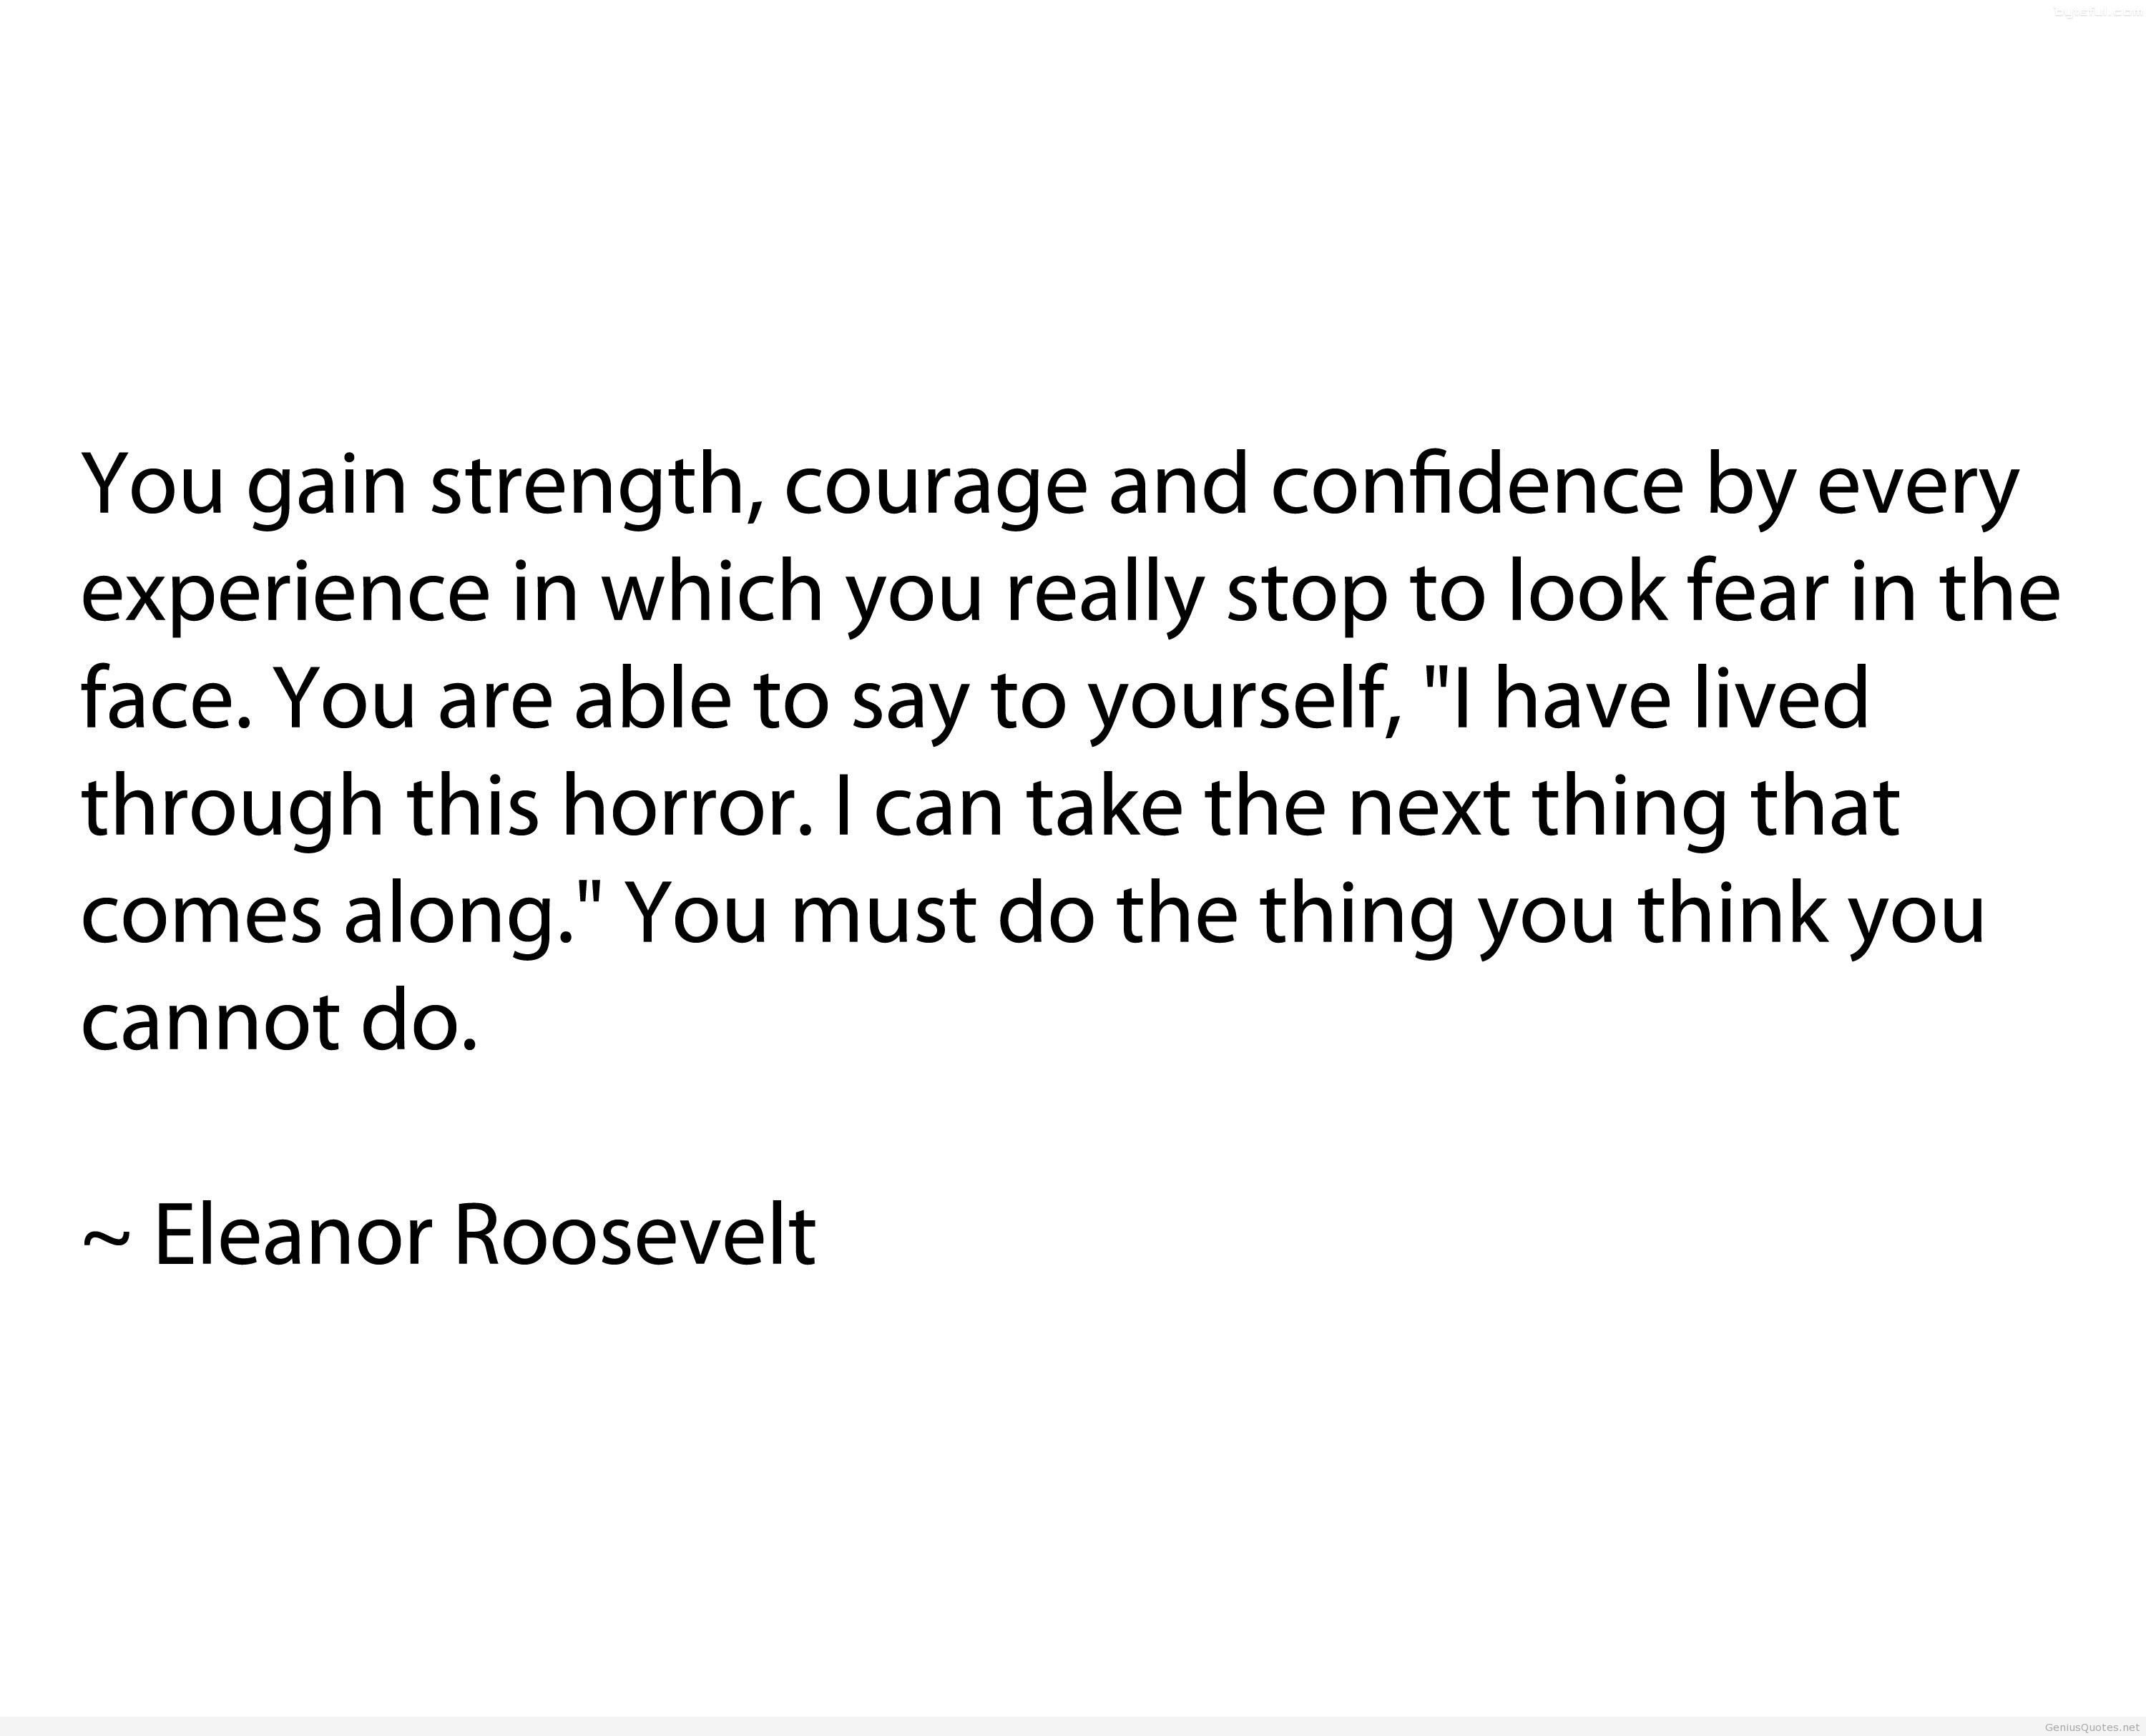 Quotes Eleanor Roosevelt Extraordinary Genius Quotes  Part 843  Lotus  Blossom Inspiration  Pinterest